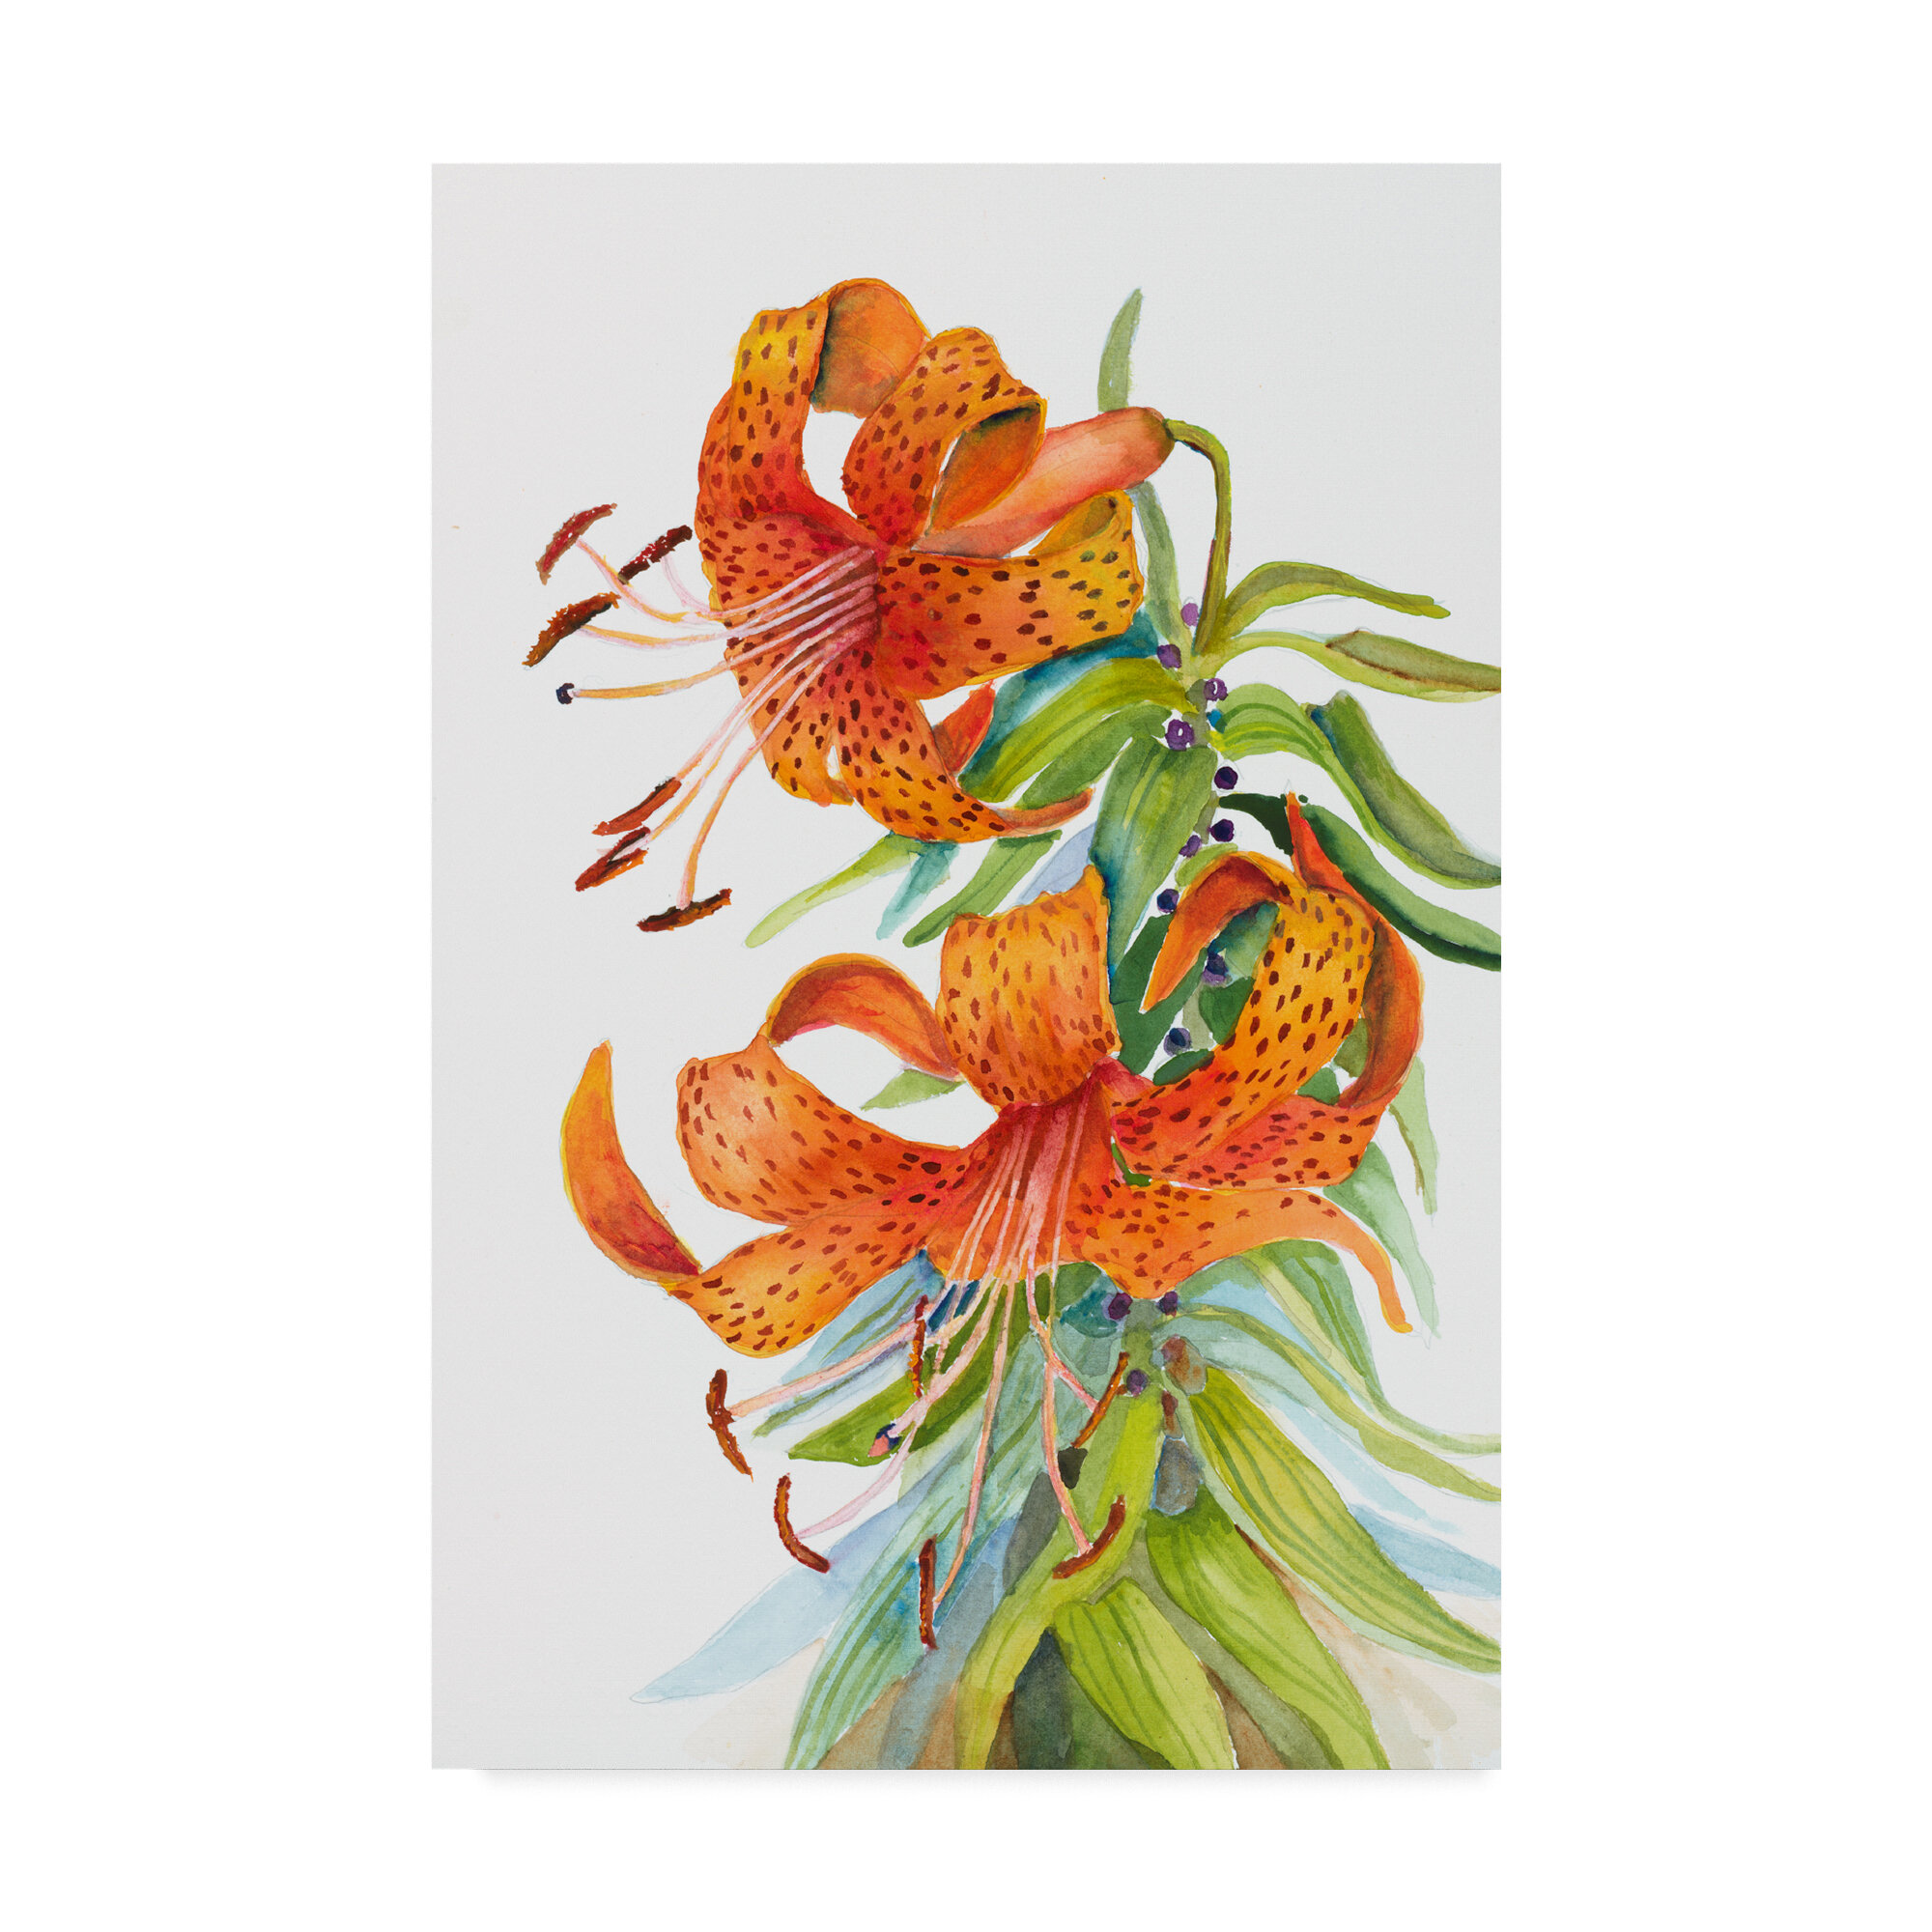 Trademark Art Tiger Lilies Graphic Art Print On Wrapped Canvas